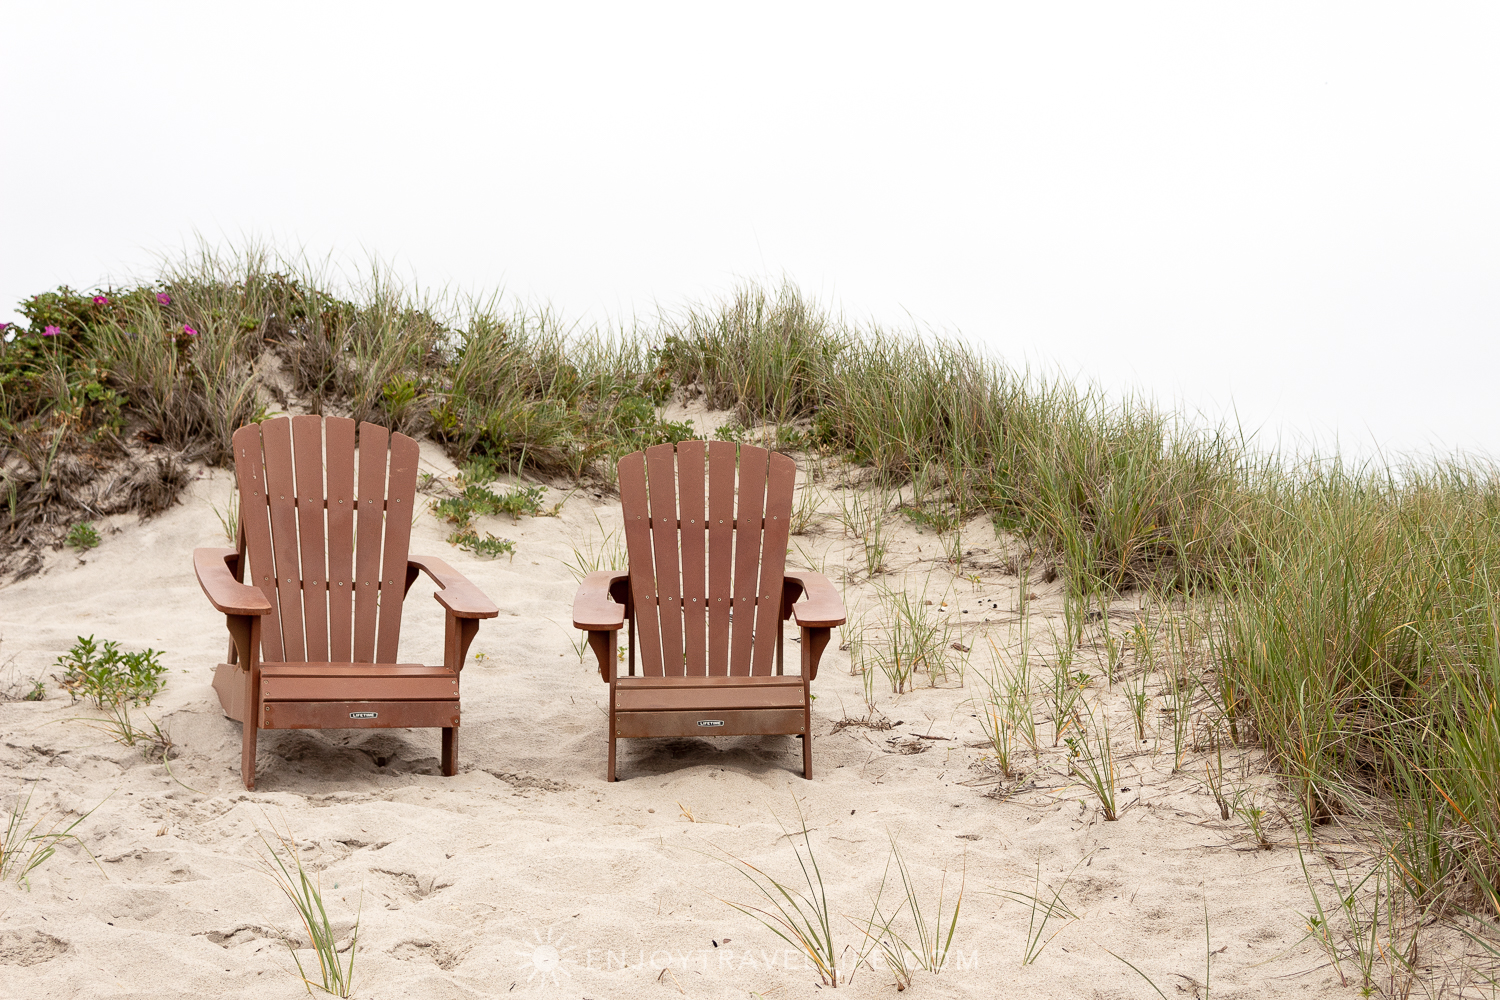 Waterfront Weekend in Chatham - Chatham Tides Inn Adirondack Chairs